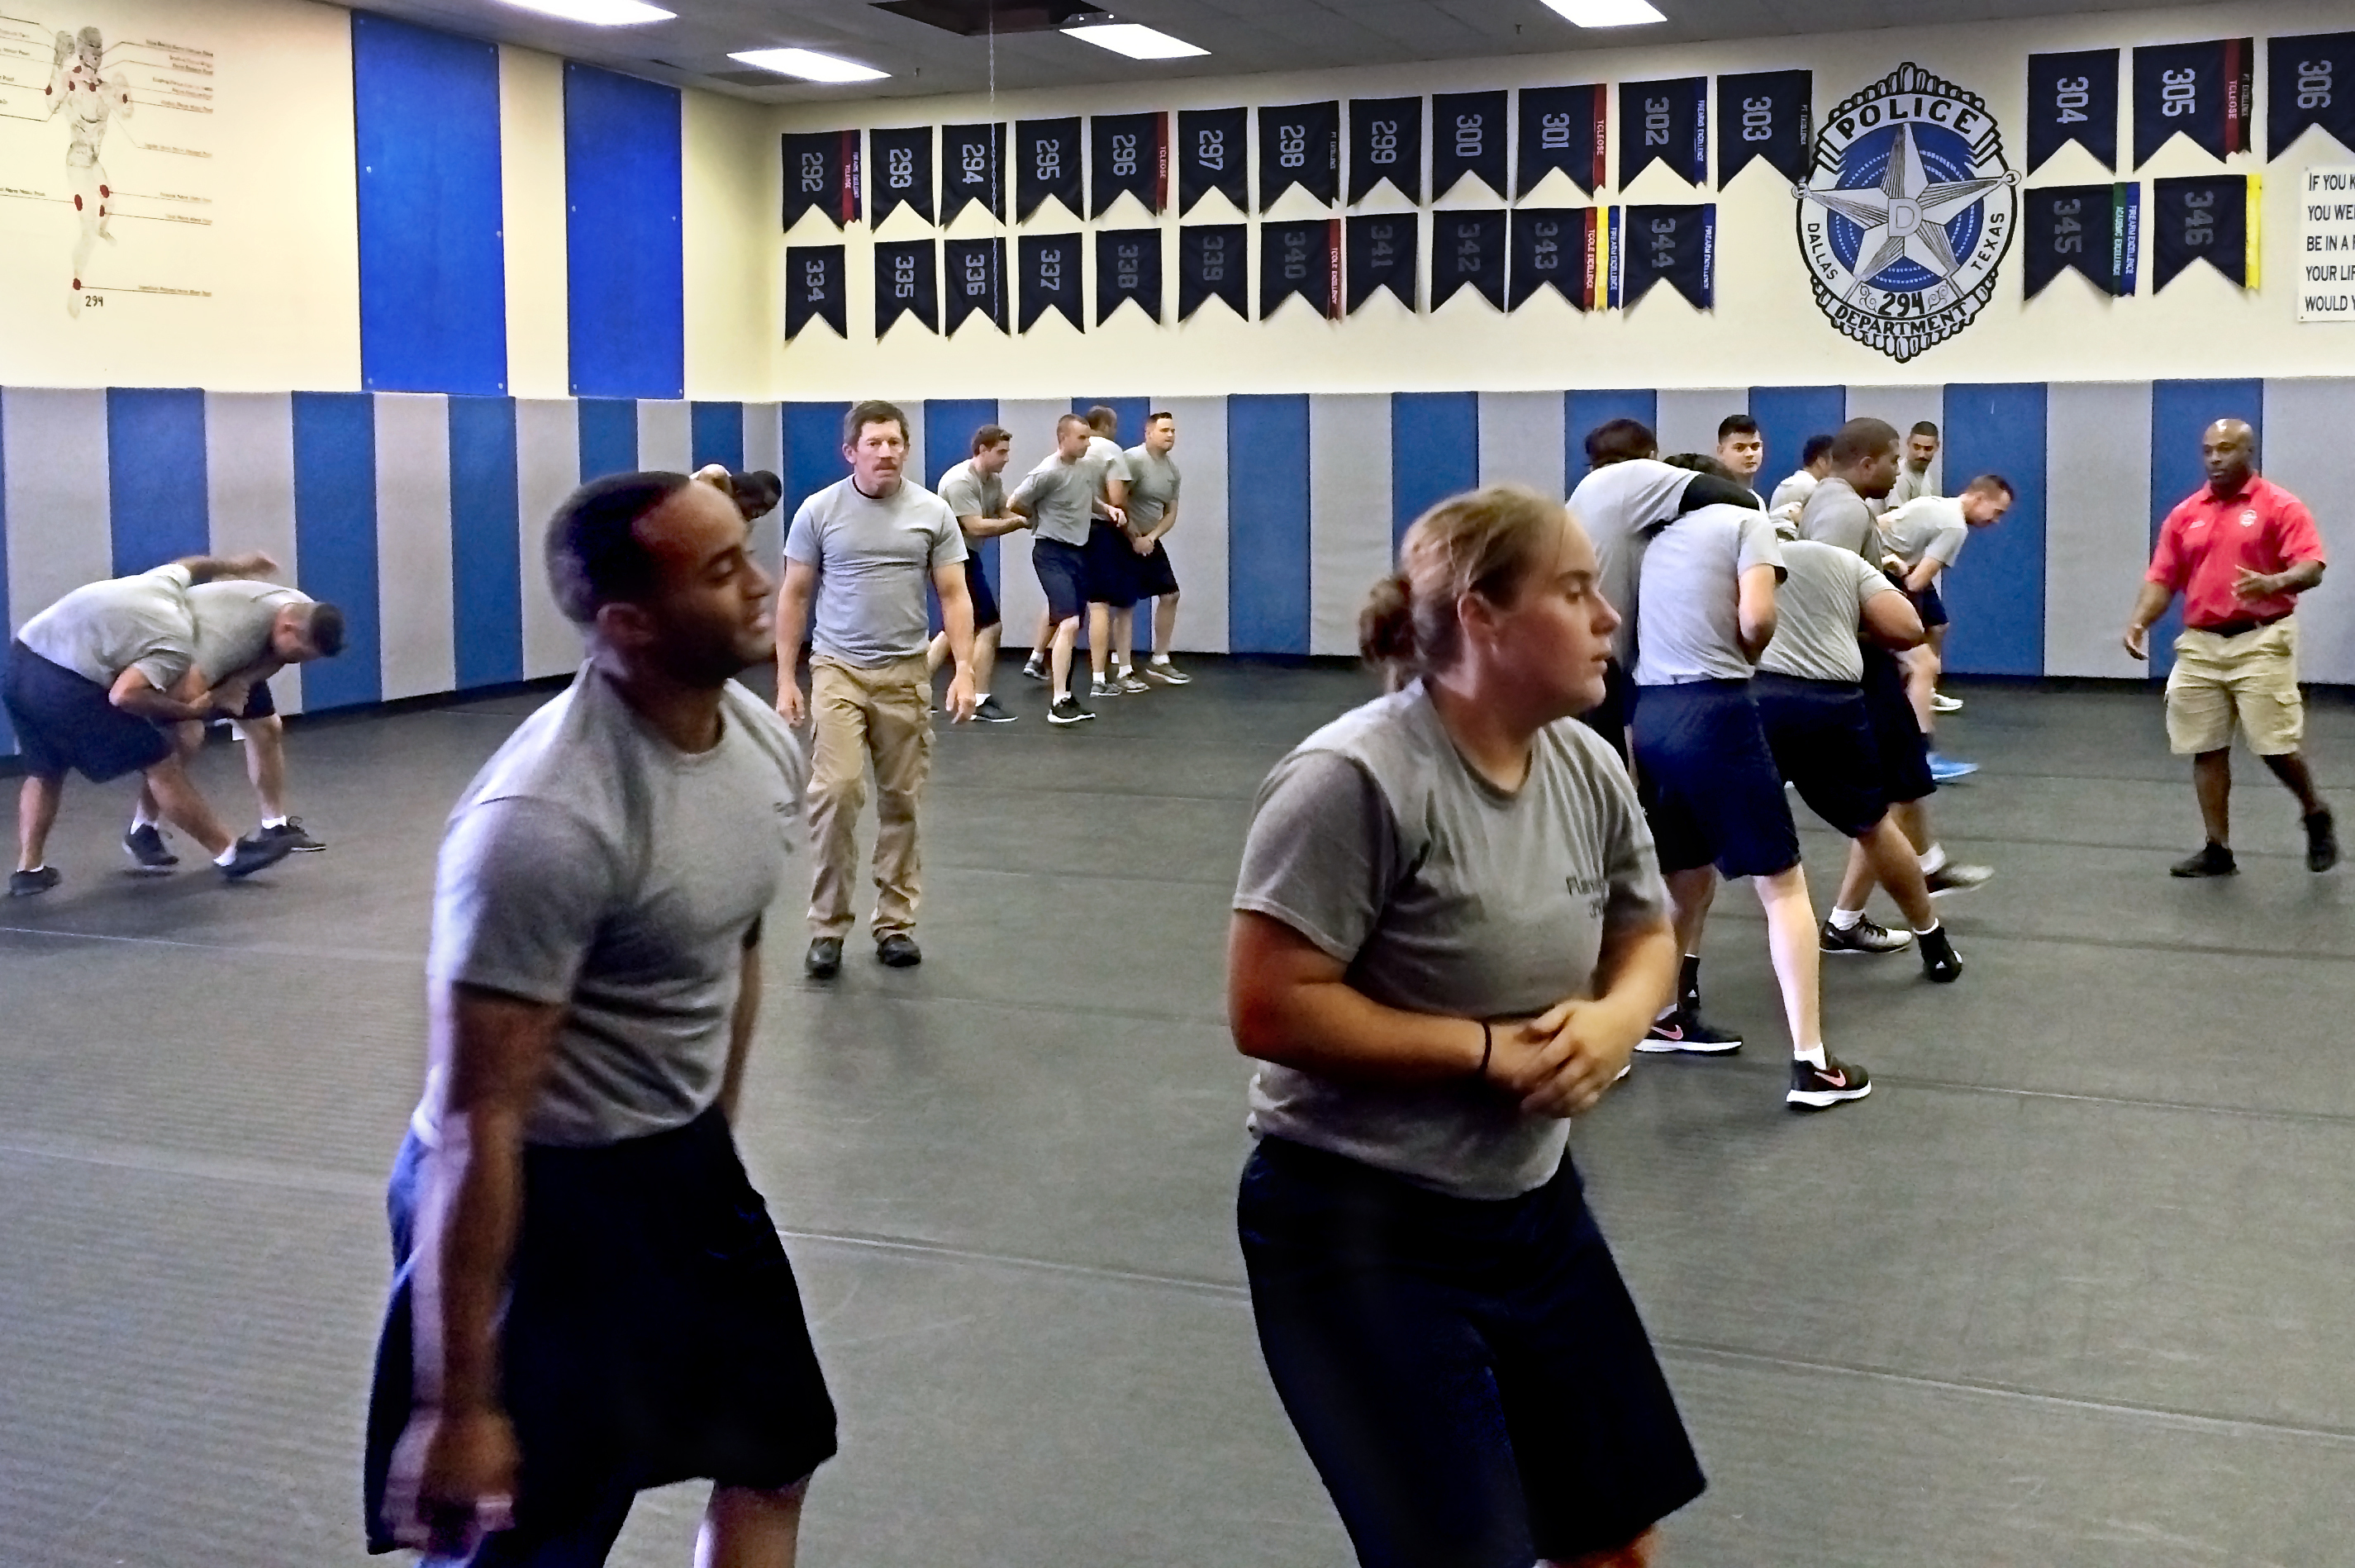 Trainees participate in a tactical defense class at the